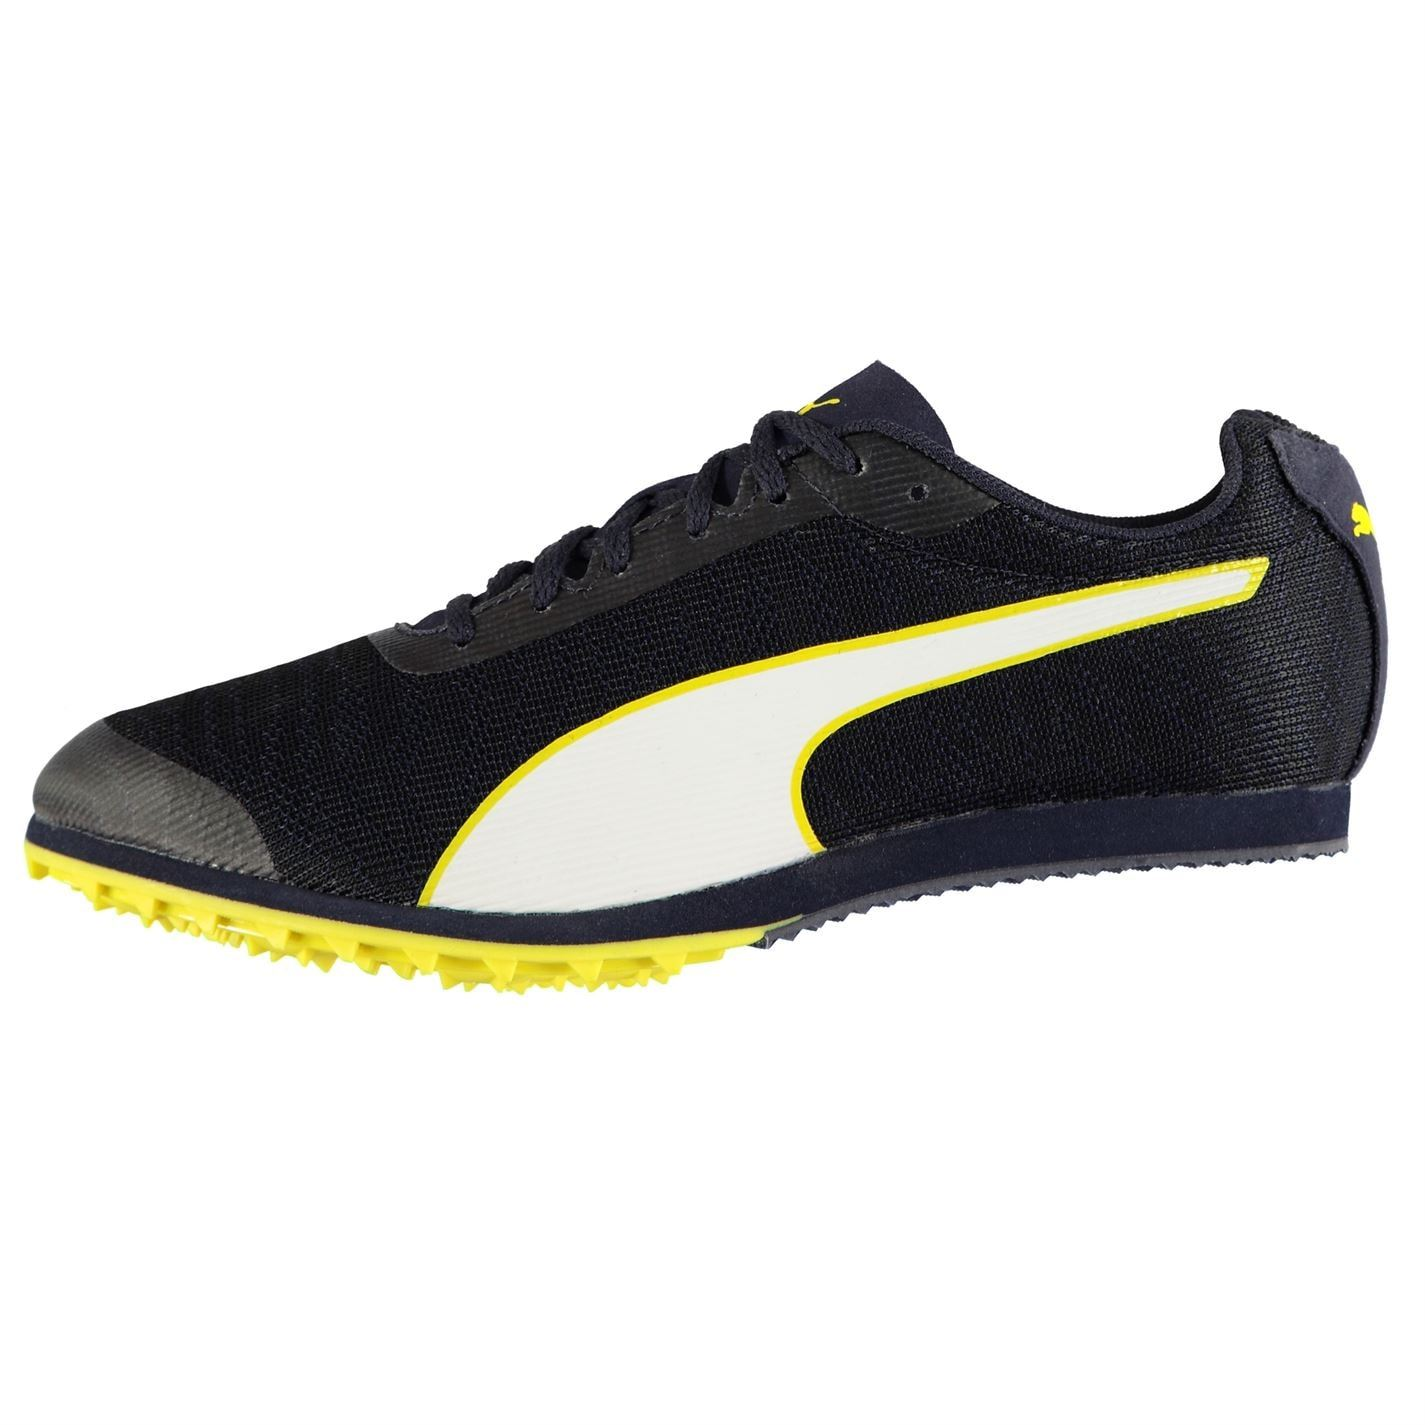 Details about Puma evoSPEED Star 6 Track Spikes Running Mens Trainers  Black/Yellow Shoes